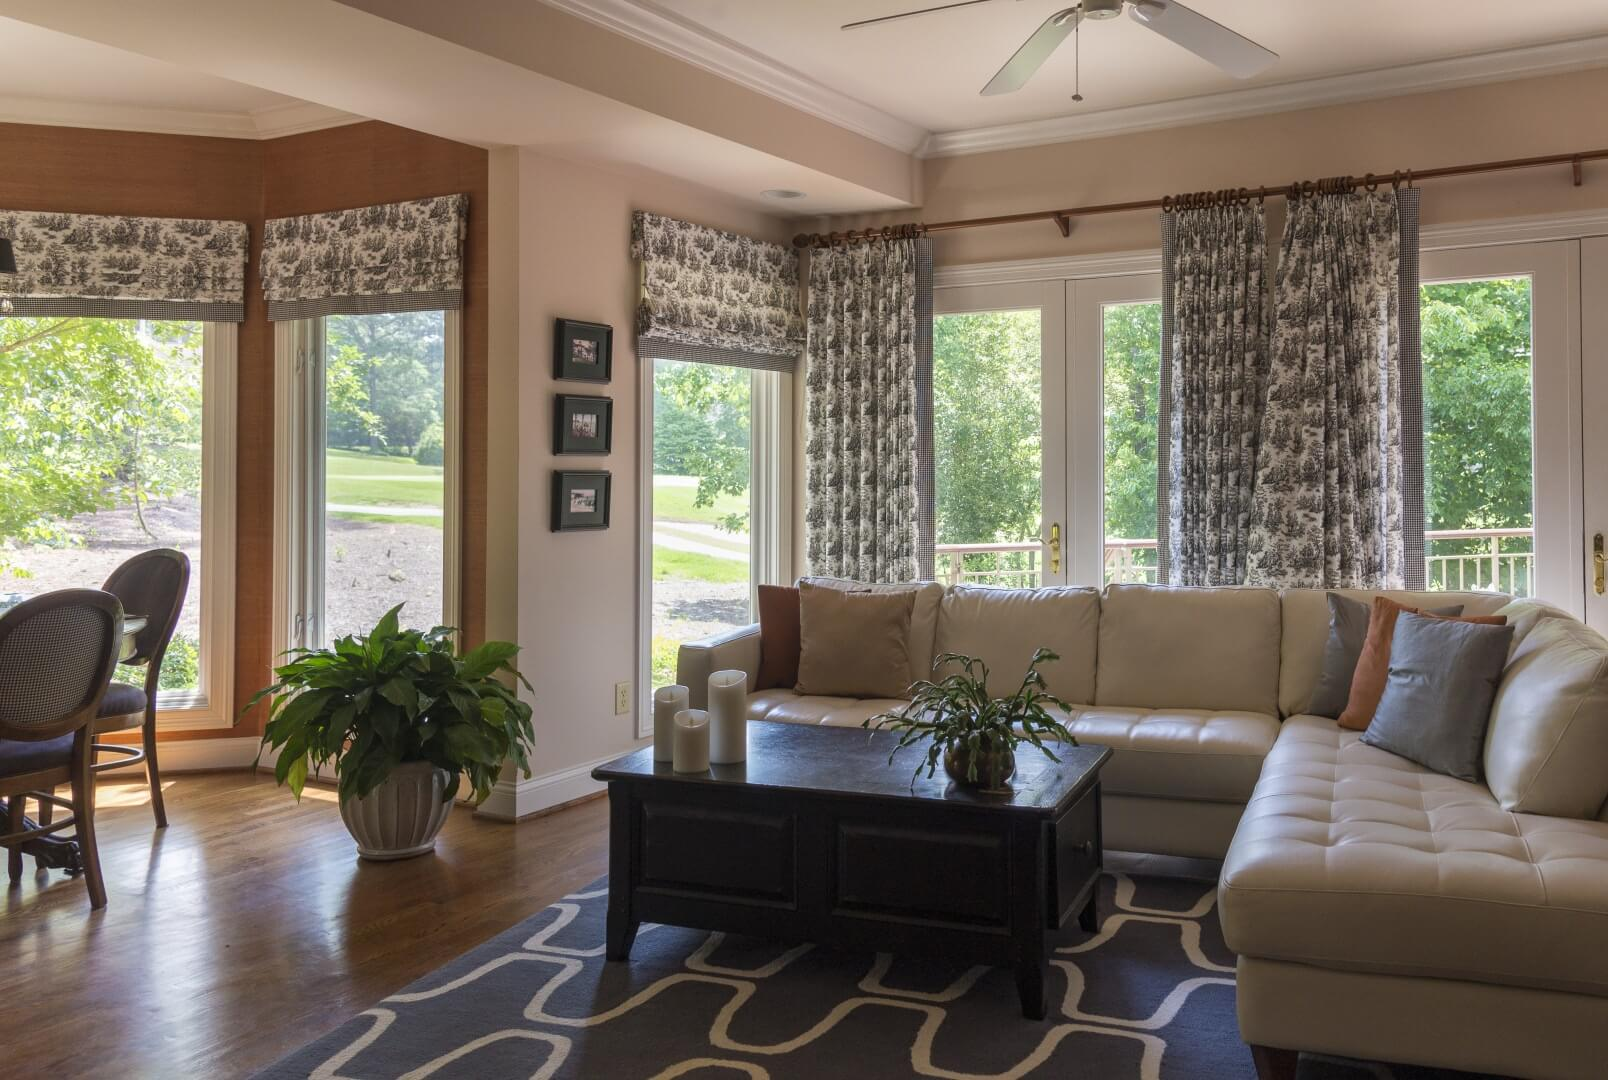 Roman Shades Vs Roller Shades Northshield Blinds And More